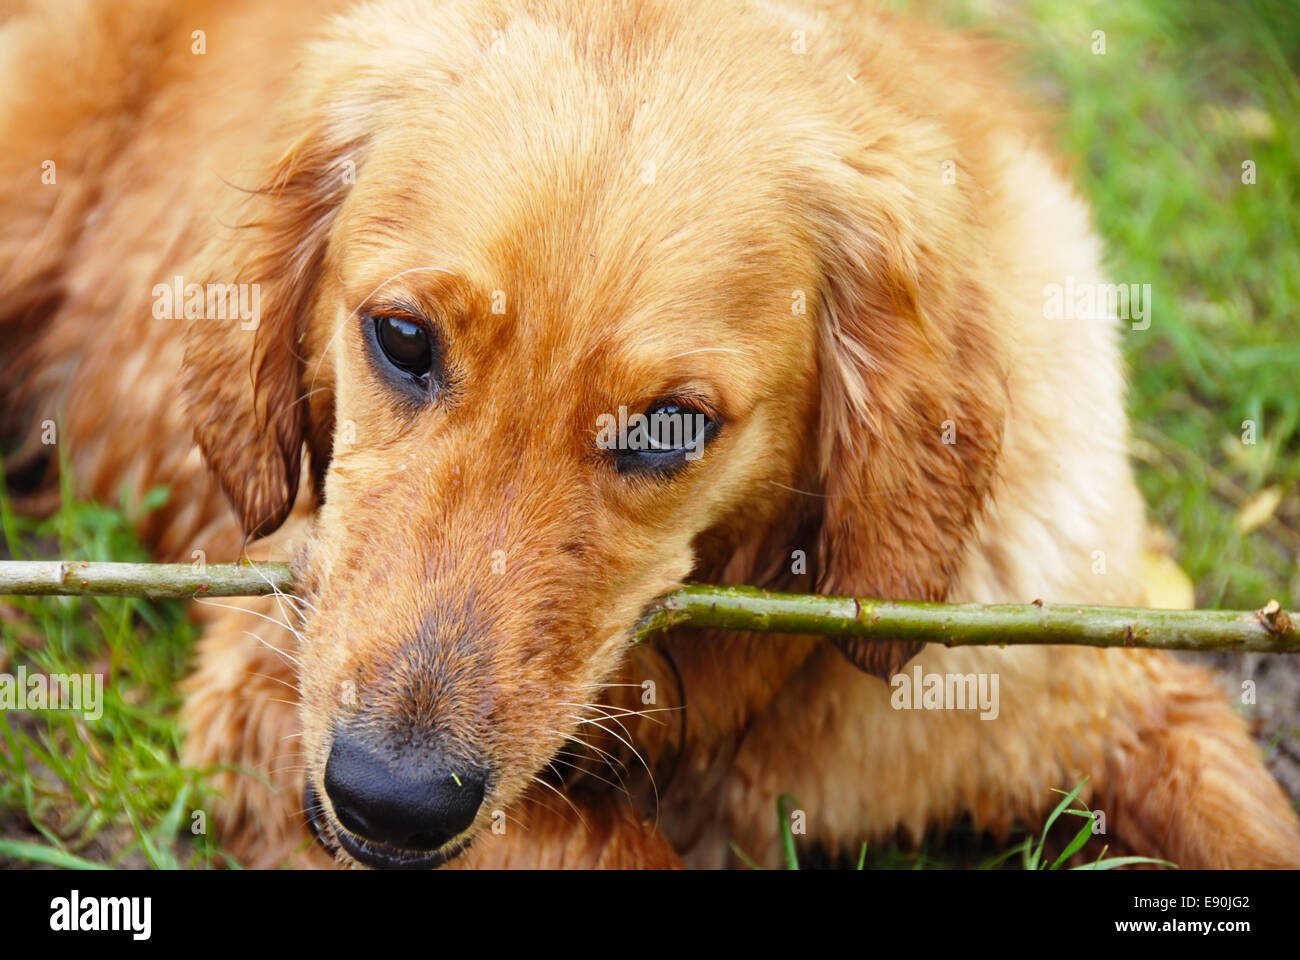 golden retriever dog portrait with stick stock photo royalty free image 74387938 alamy. Black Bedroom Furniture Sets. Home Design Ideas